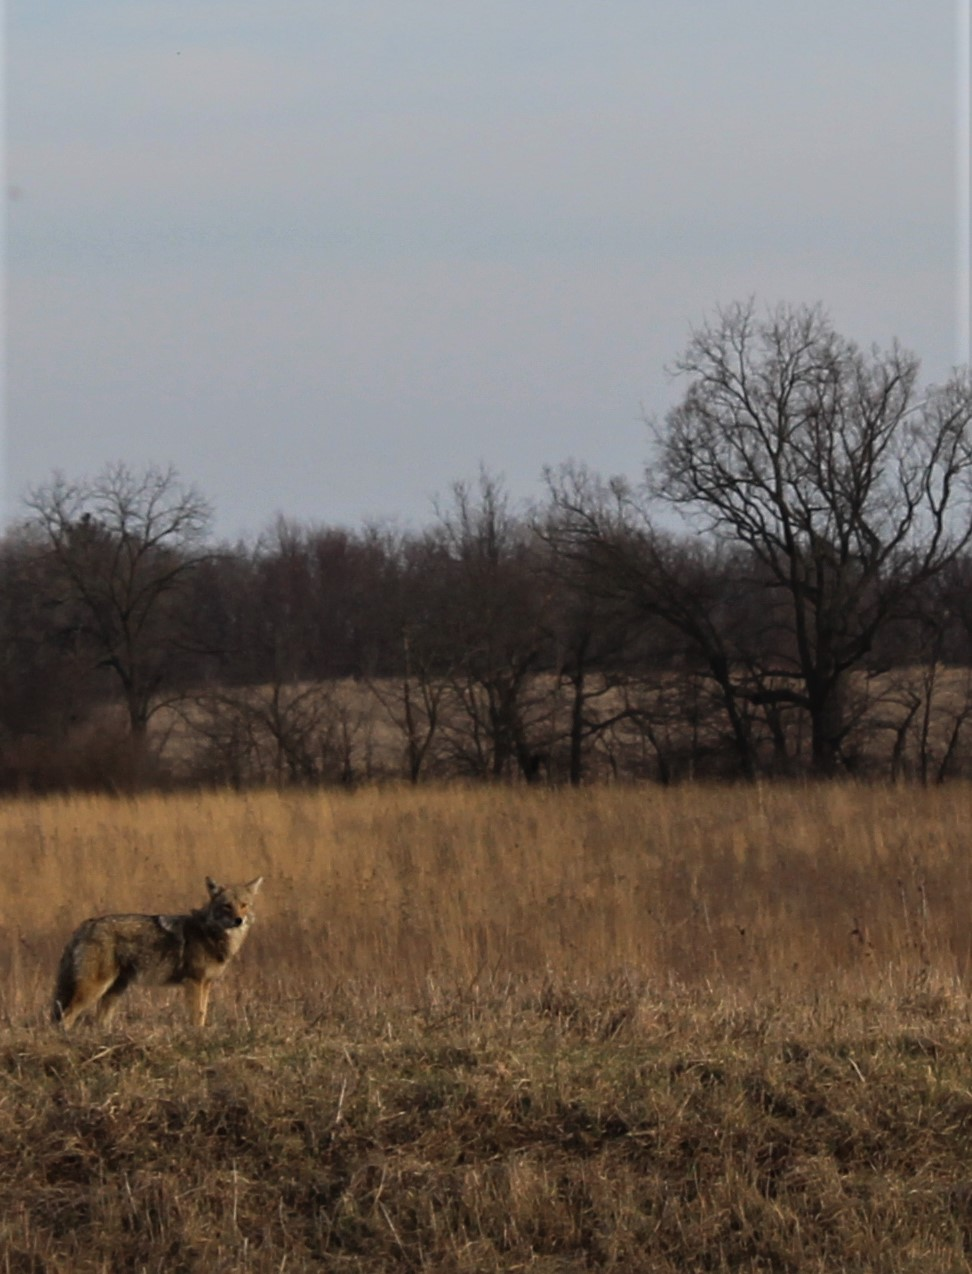 (4/4) The coyote says goodbye. Photo: Zoe Toliopoulos Sherwin, nature, wildlife, animal, mammal, coyote, landscape, prairie, grass, plant